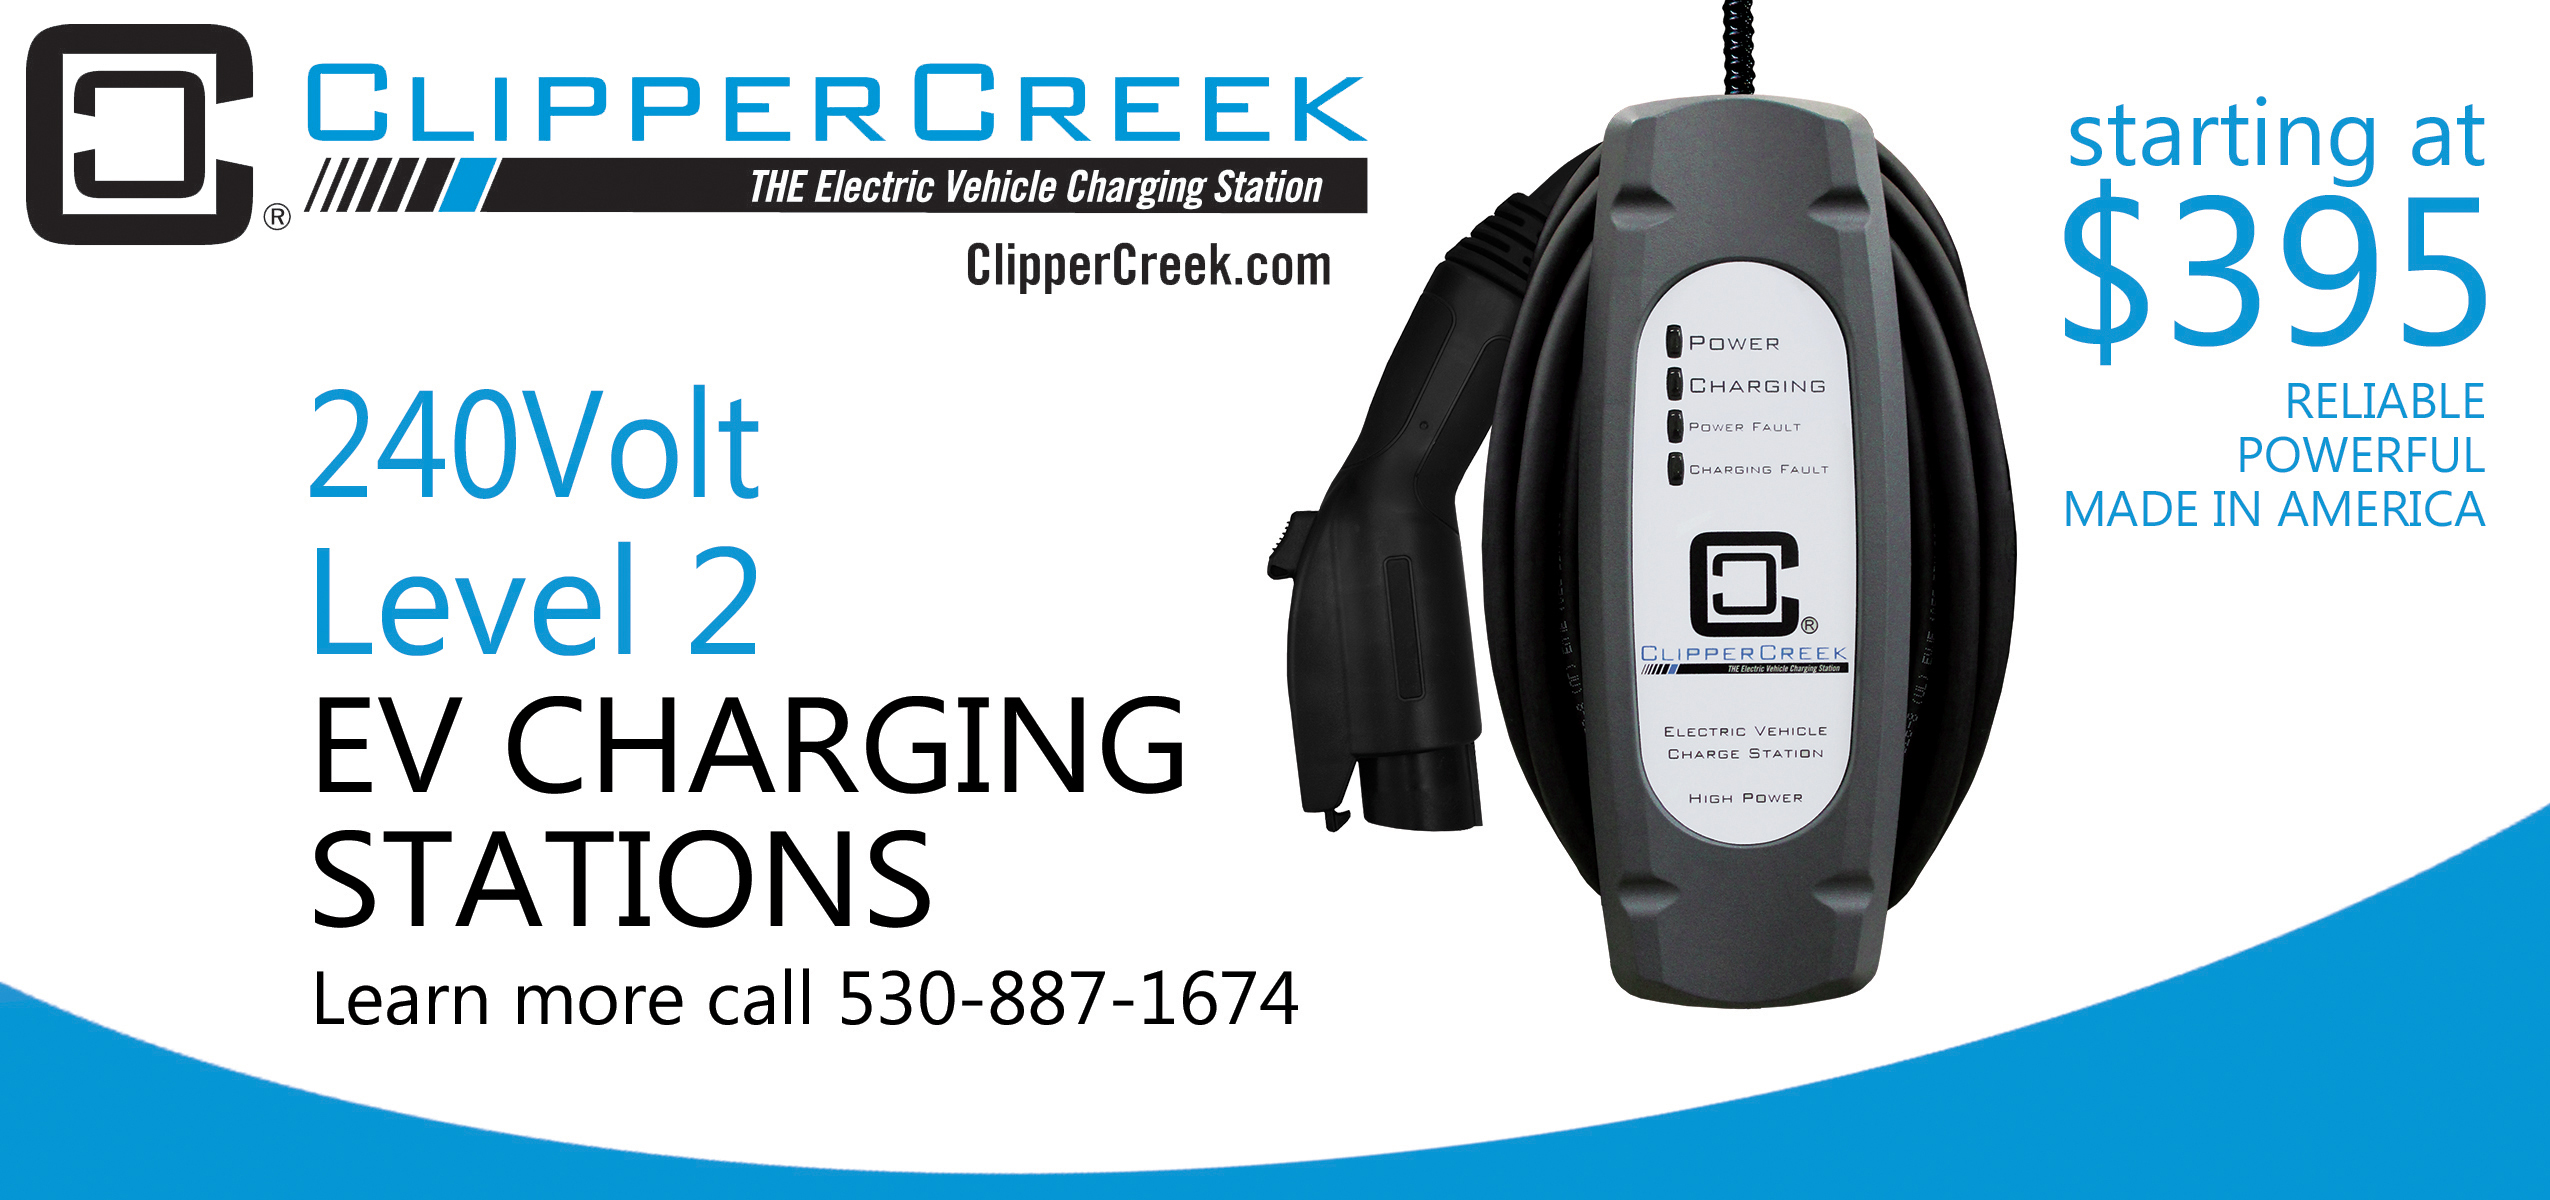 Clippercreek Launches A 395 Level 2 Ev Charging Station Business Wire